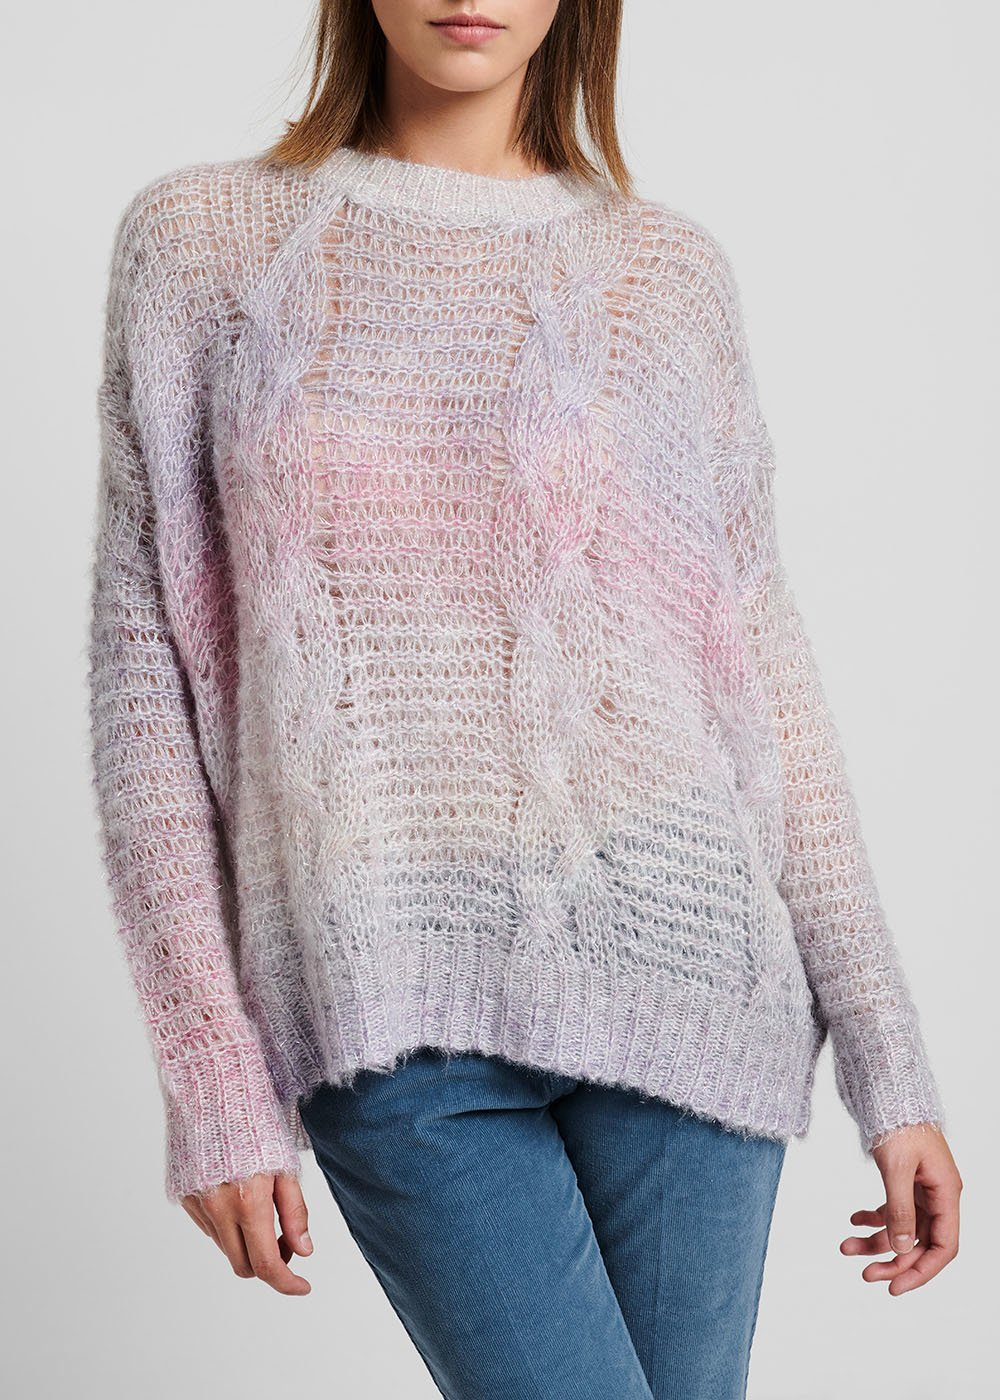 Fake mohair sweater with shaded effect